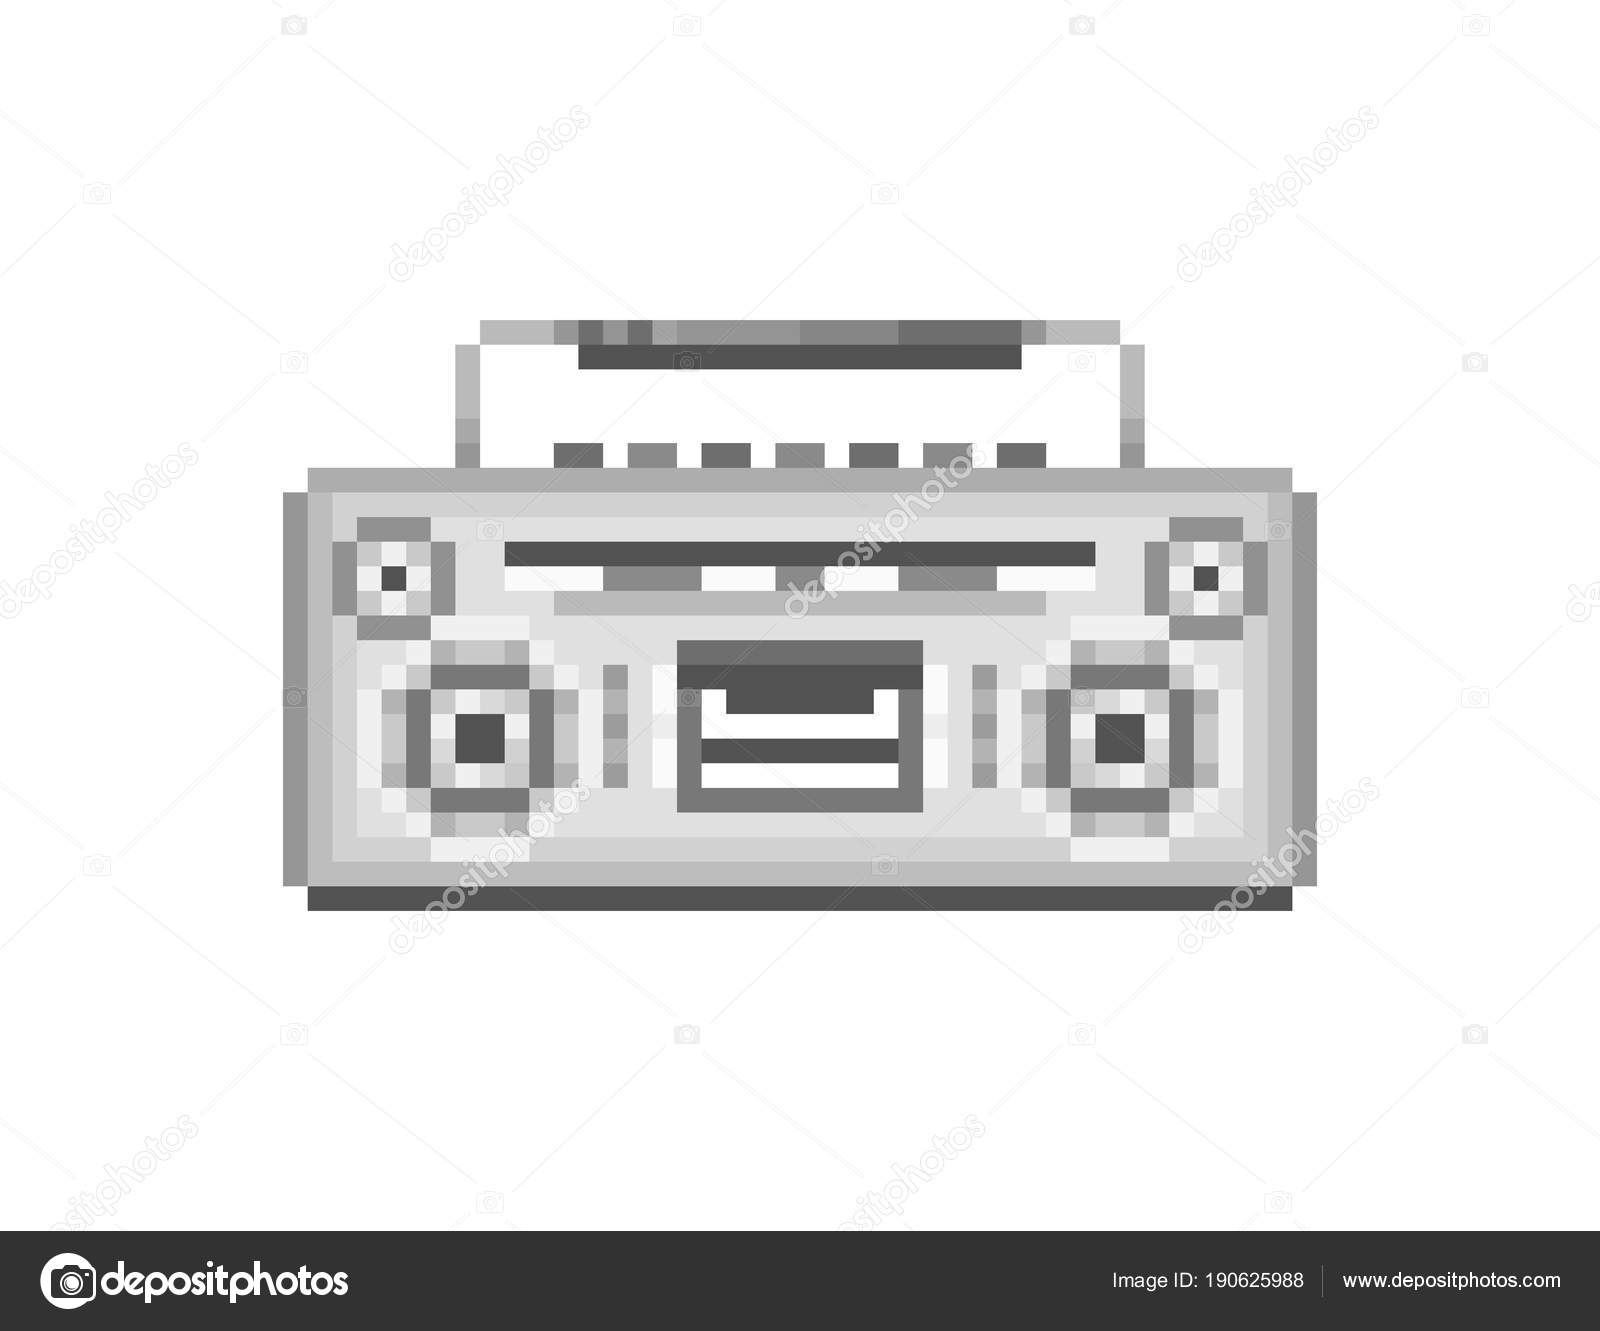 Retro Silver Boombox Bit Pixel Art Icon Isolated White Background